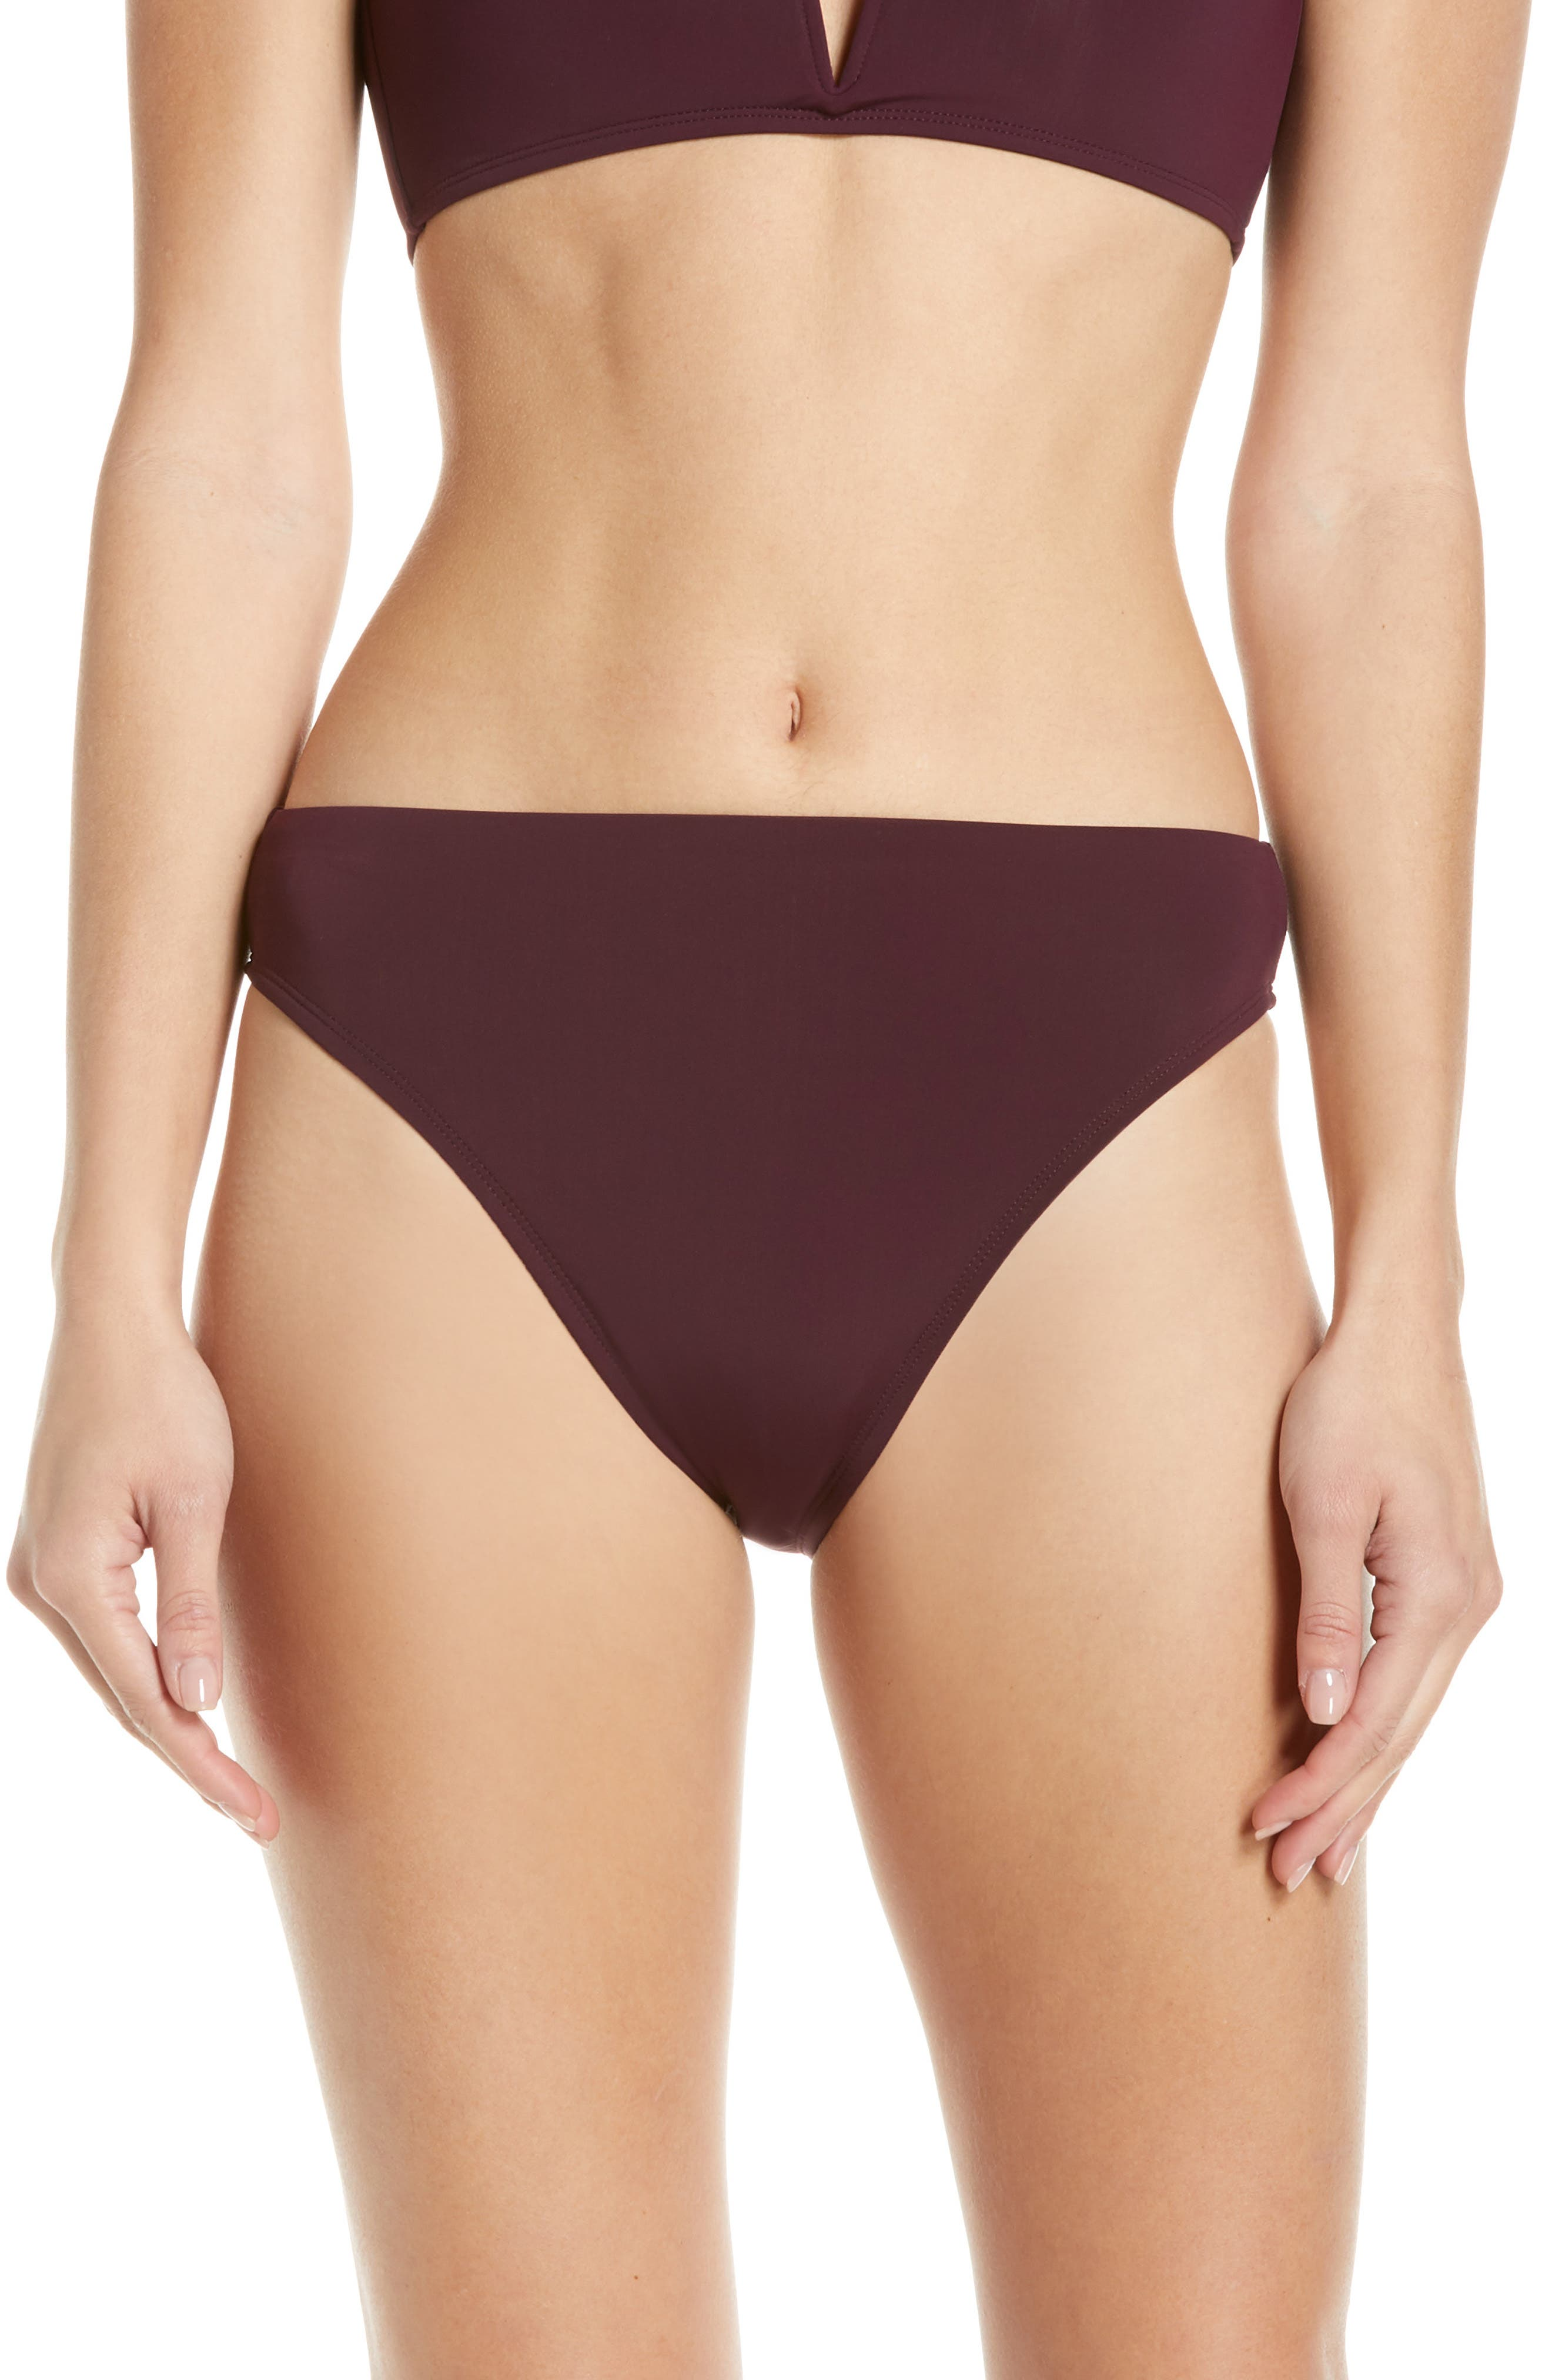 Beth Richards Heather High Waist Bikini Bottoms, Burgundy